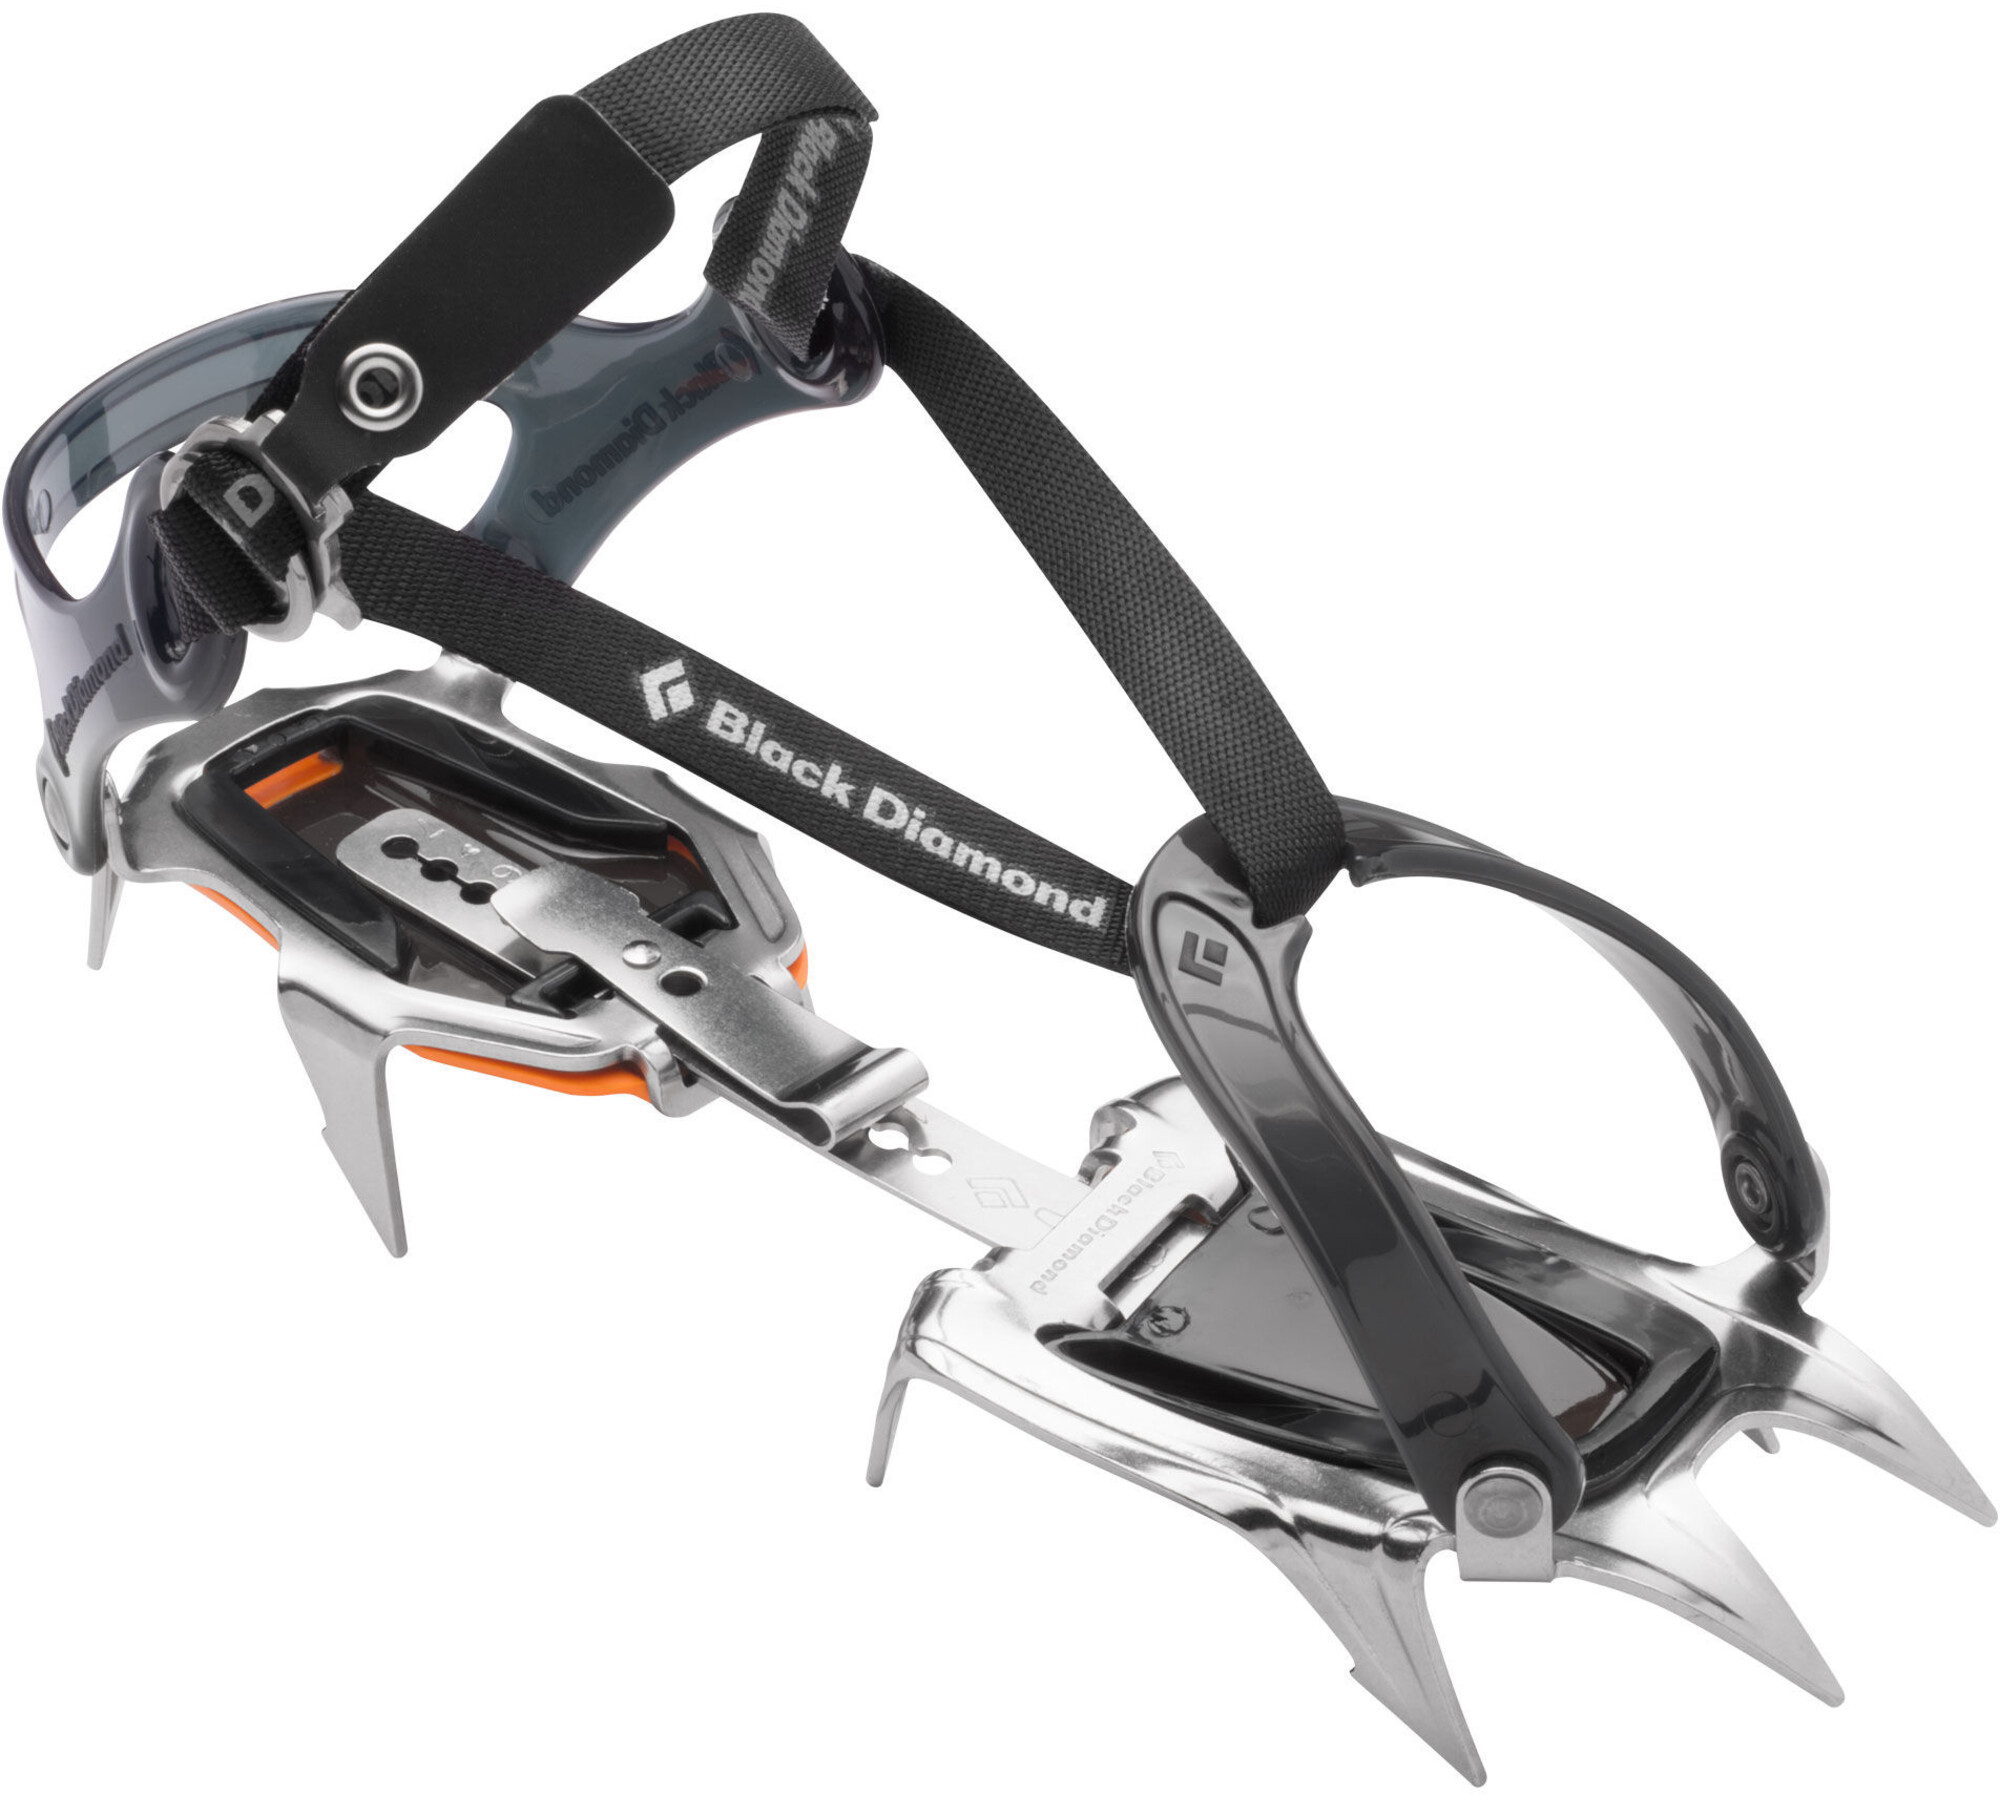 black diamond contact crampon instructions